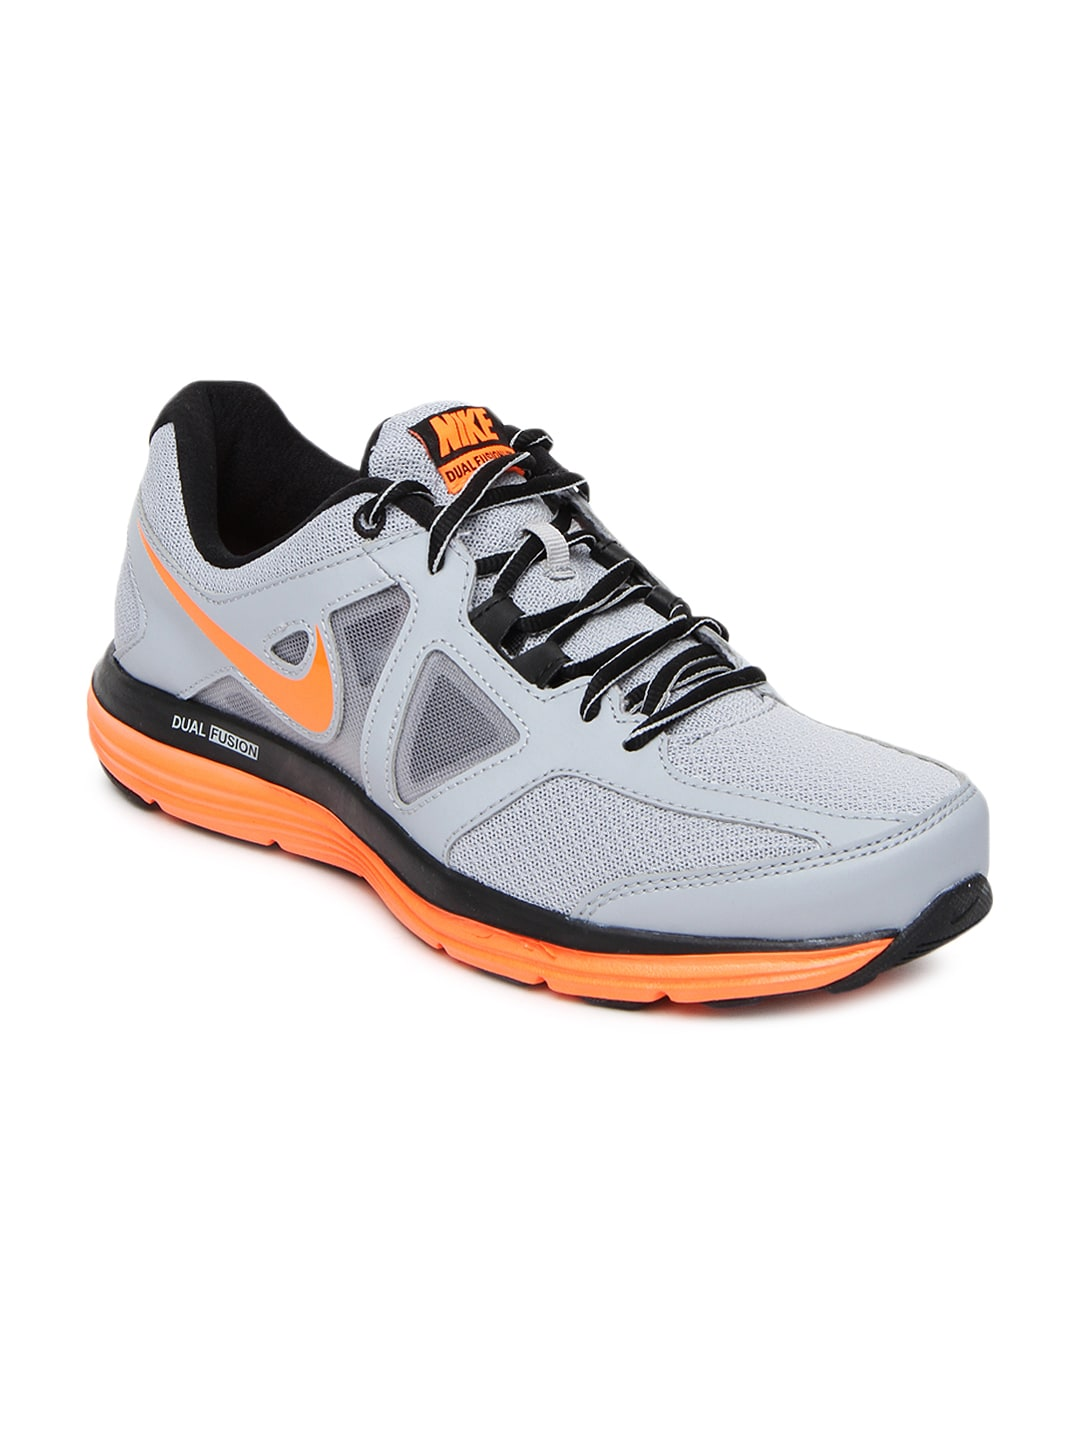 Nike 642821-004 Men Grey Dual Fusion Lite 2 Msl Sports Shoes- Price in India